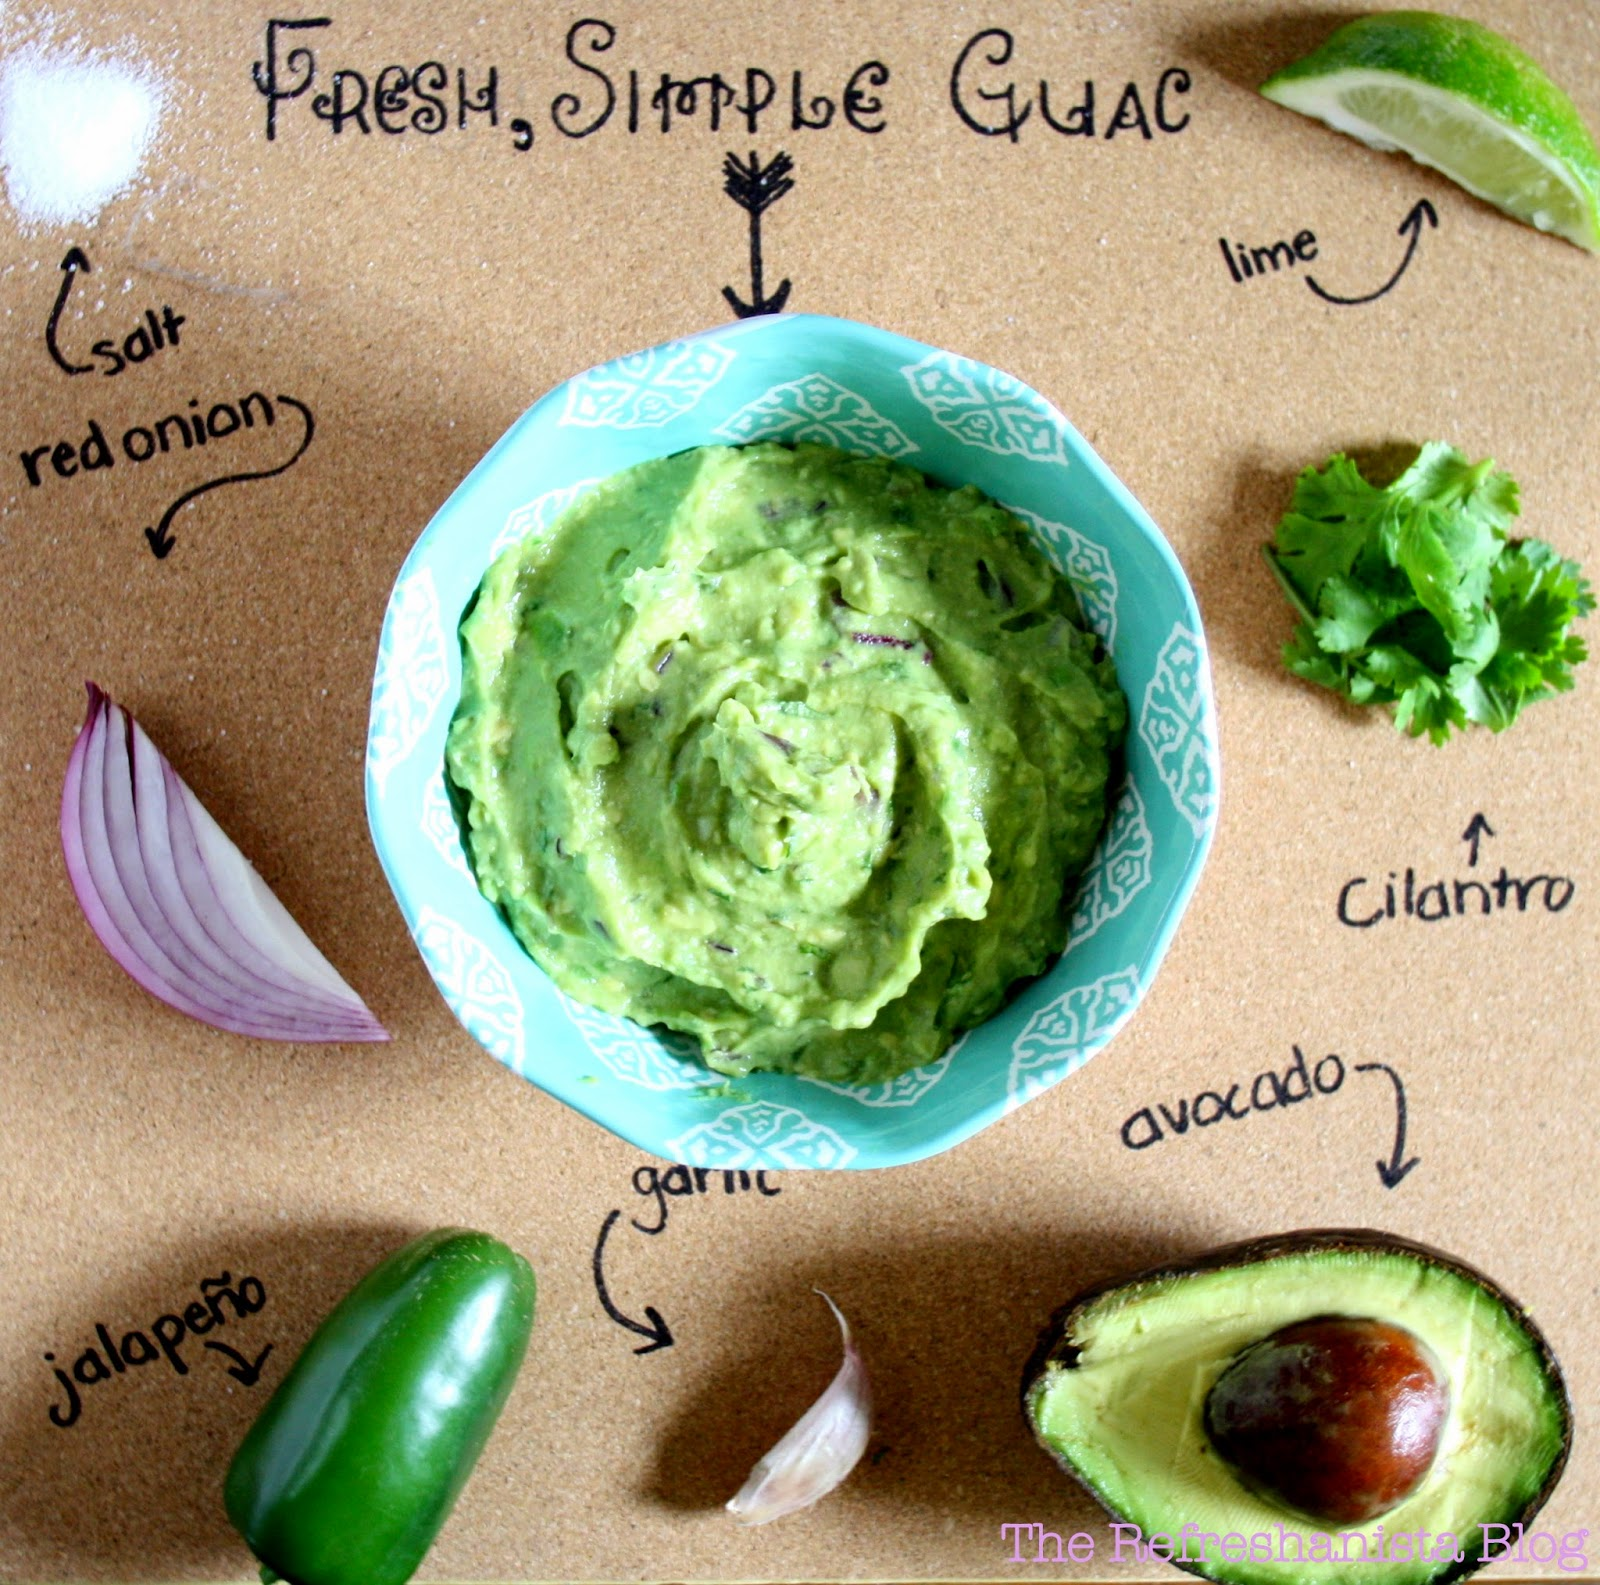 Fresh, Simple Guacamole | The Refreshanista Blog